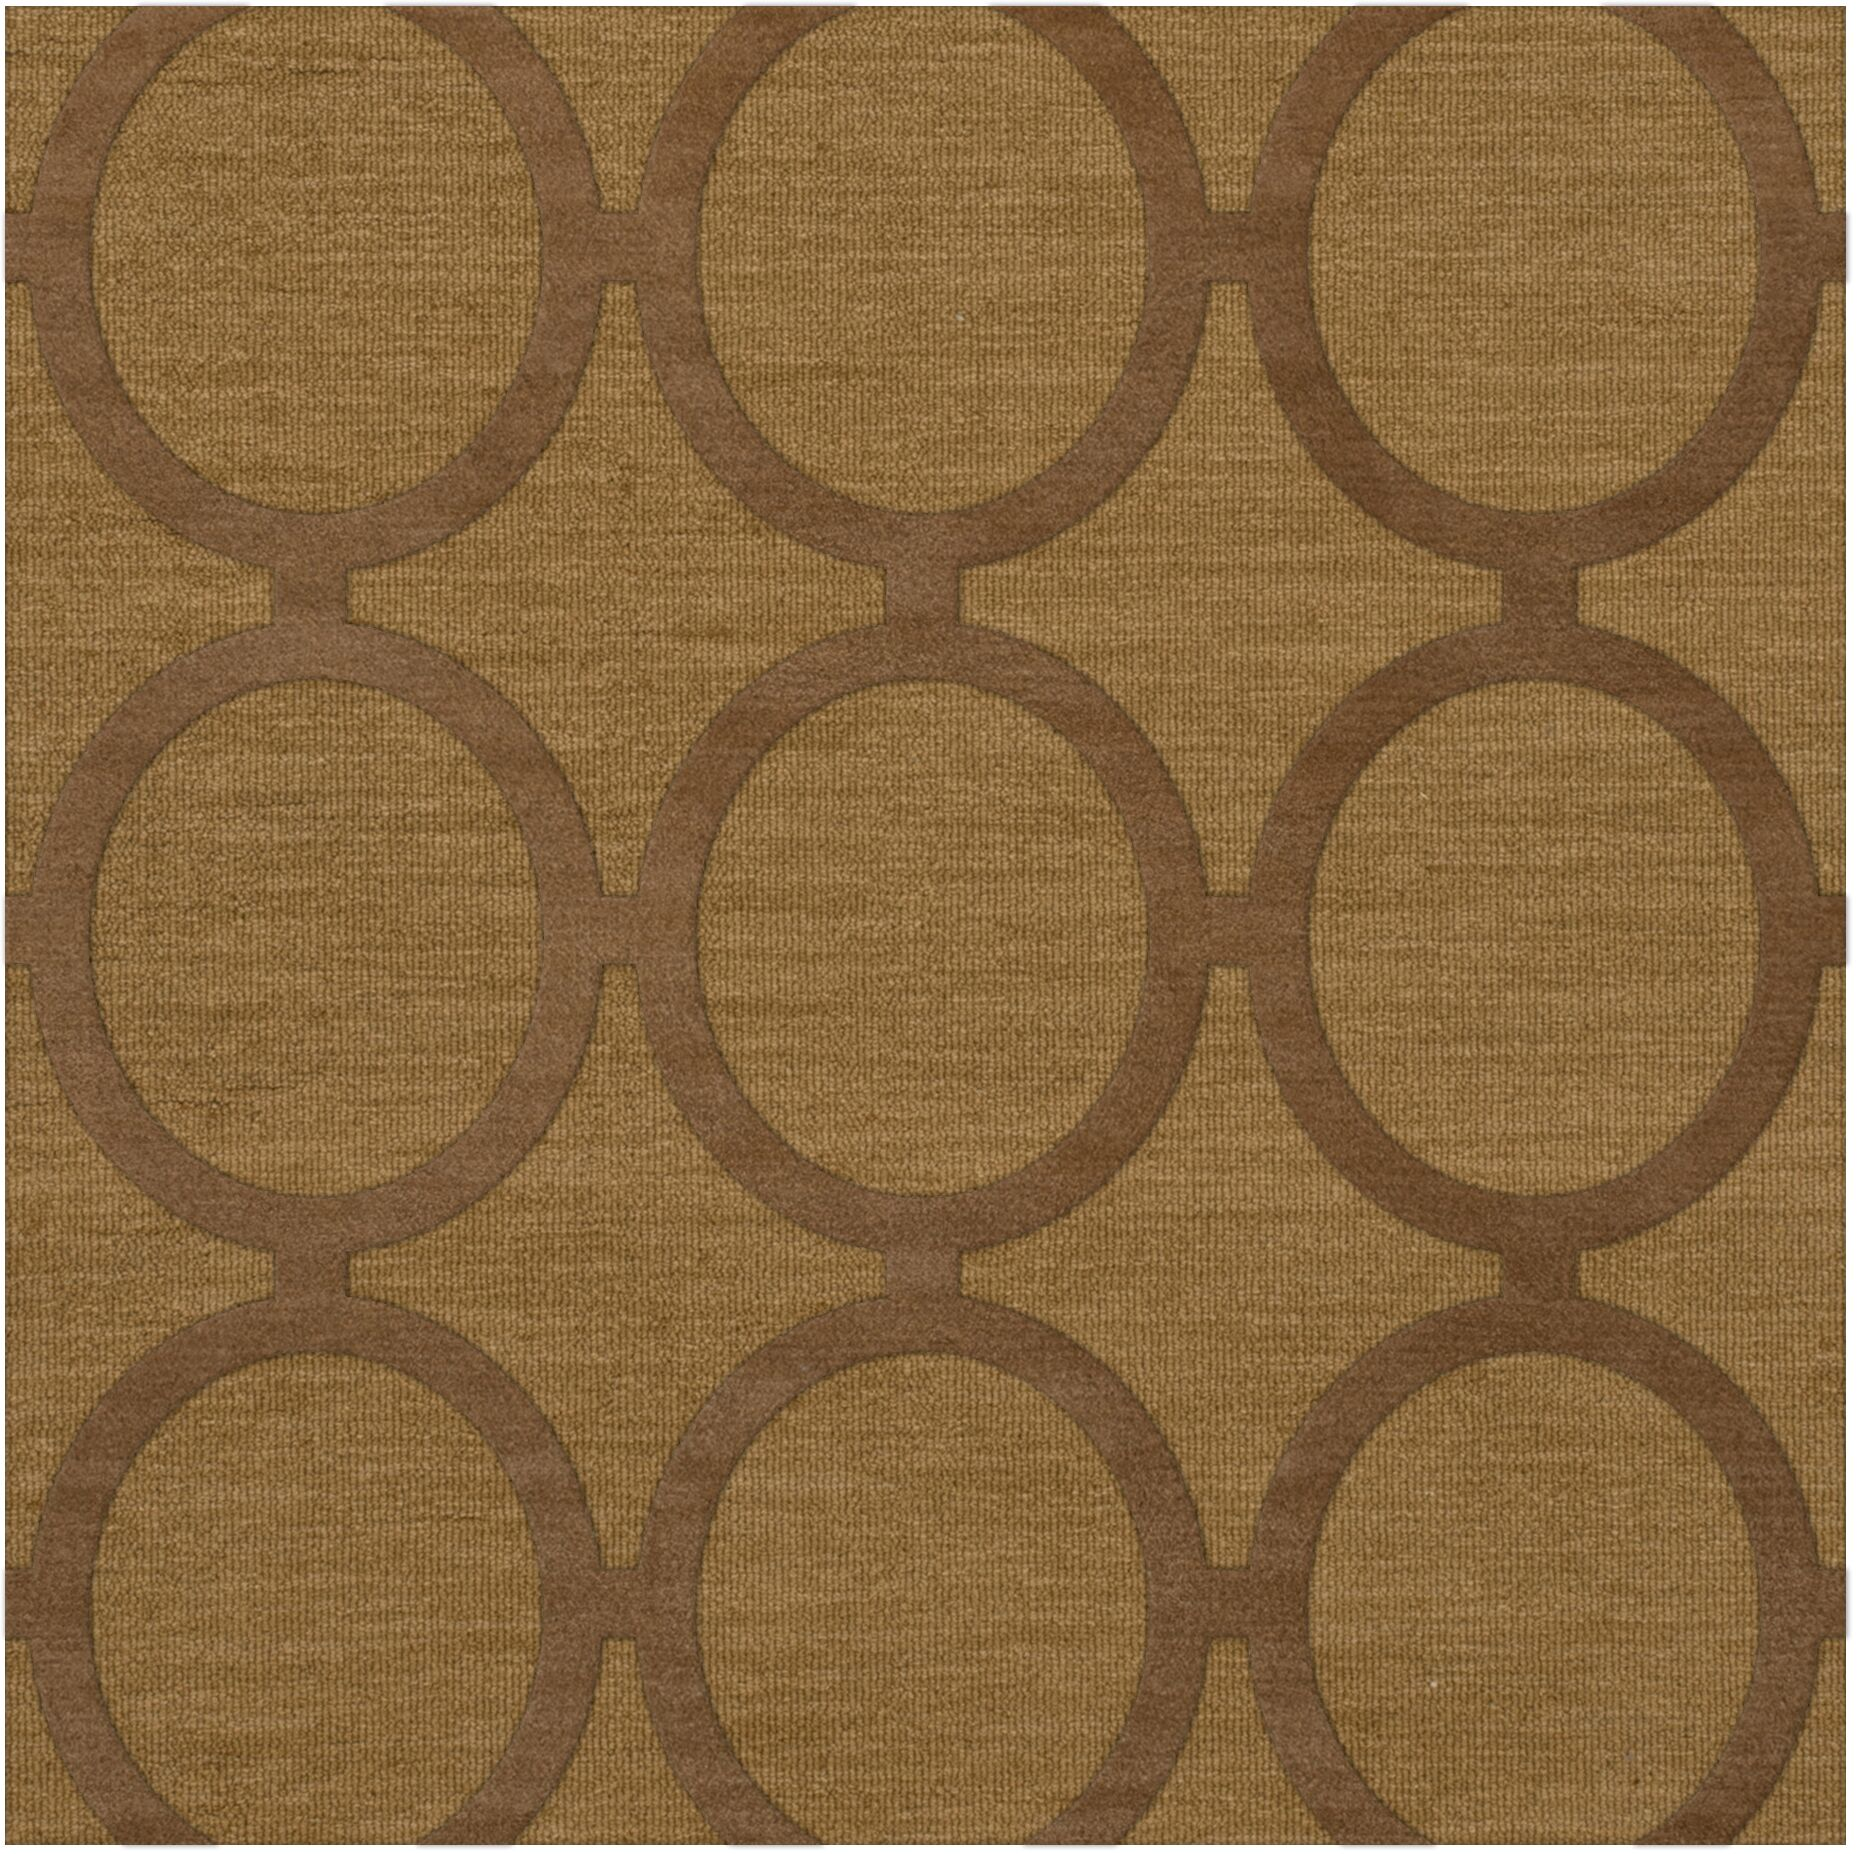 Dover Tufted Wool Gold Dust Area Rug Rug Size: Square 4'